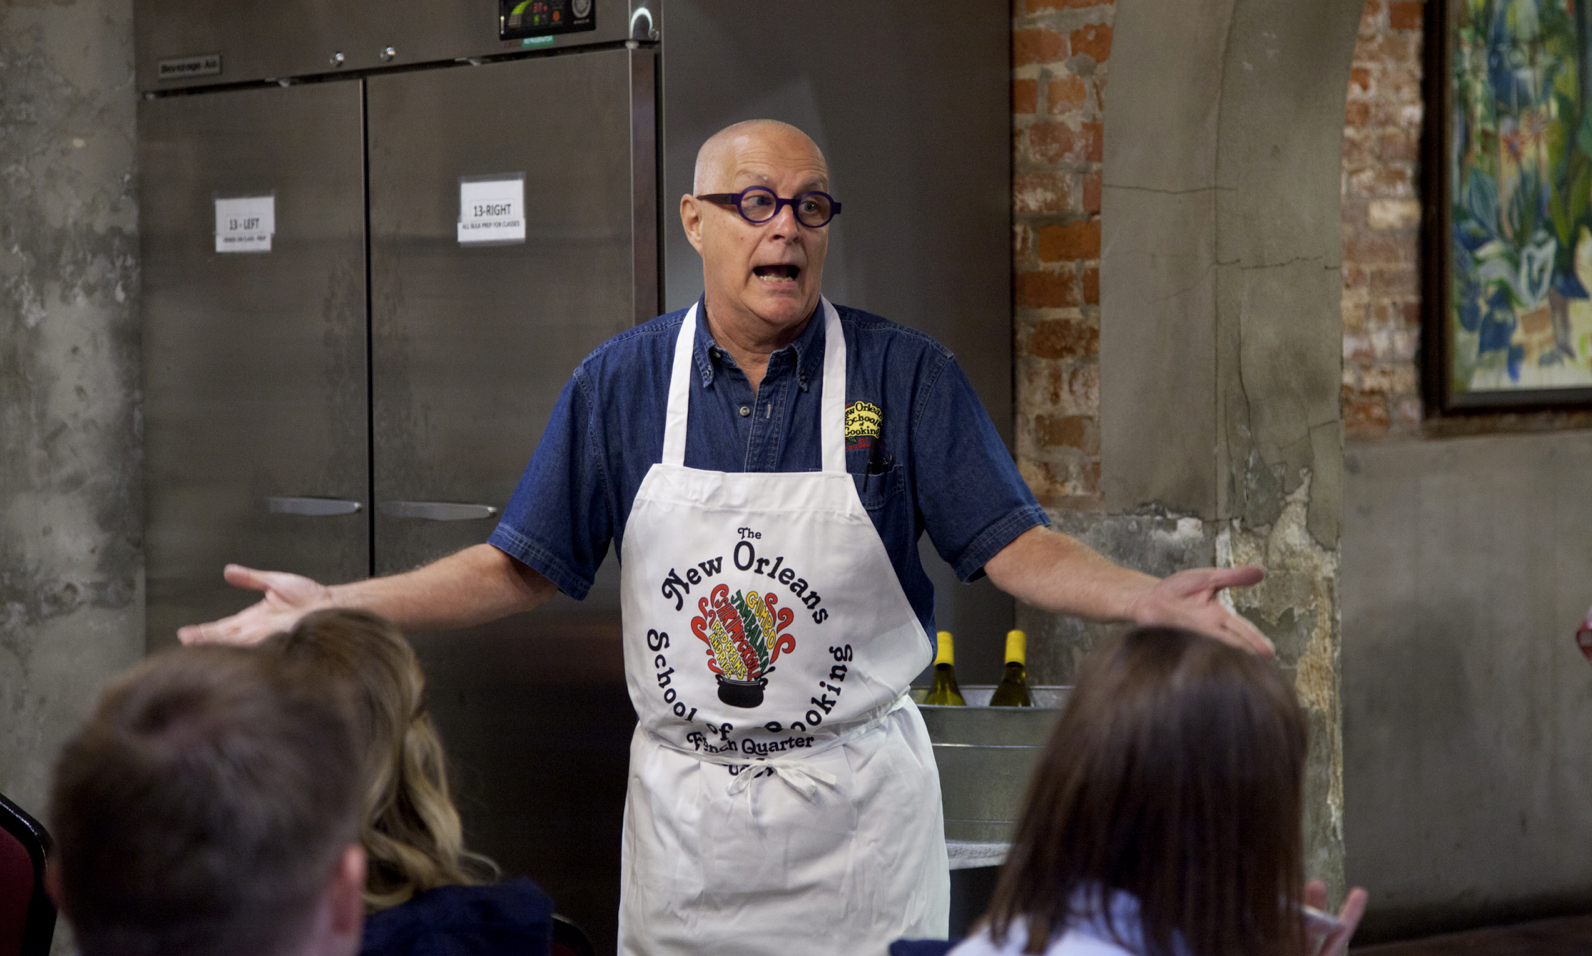 New Orleans cooking school gives taste of culture